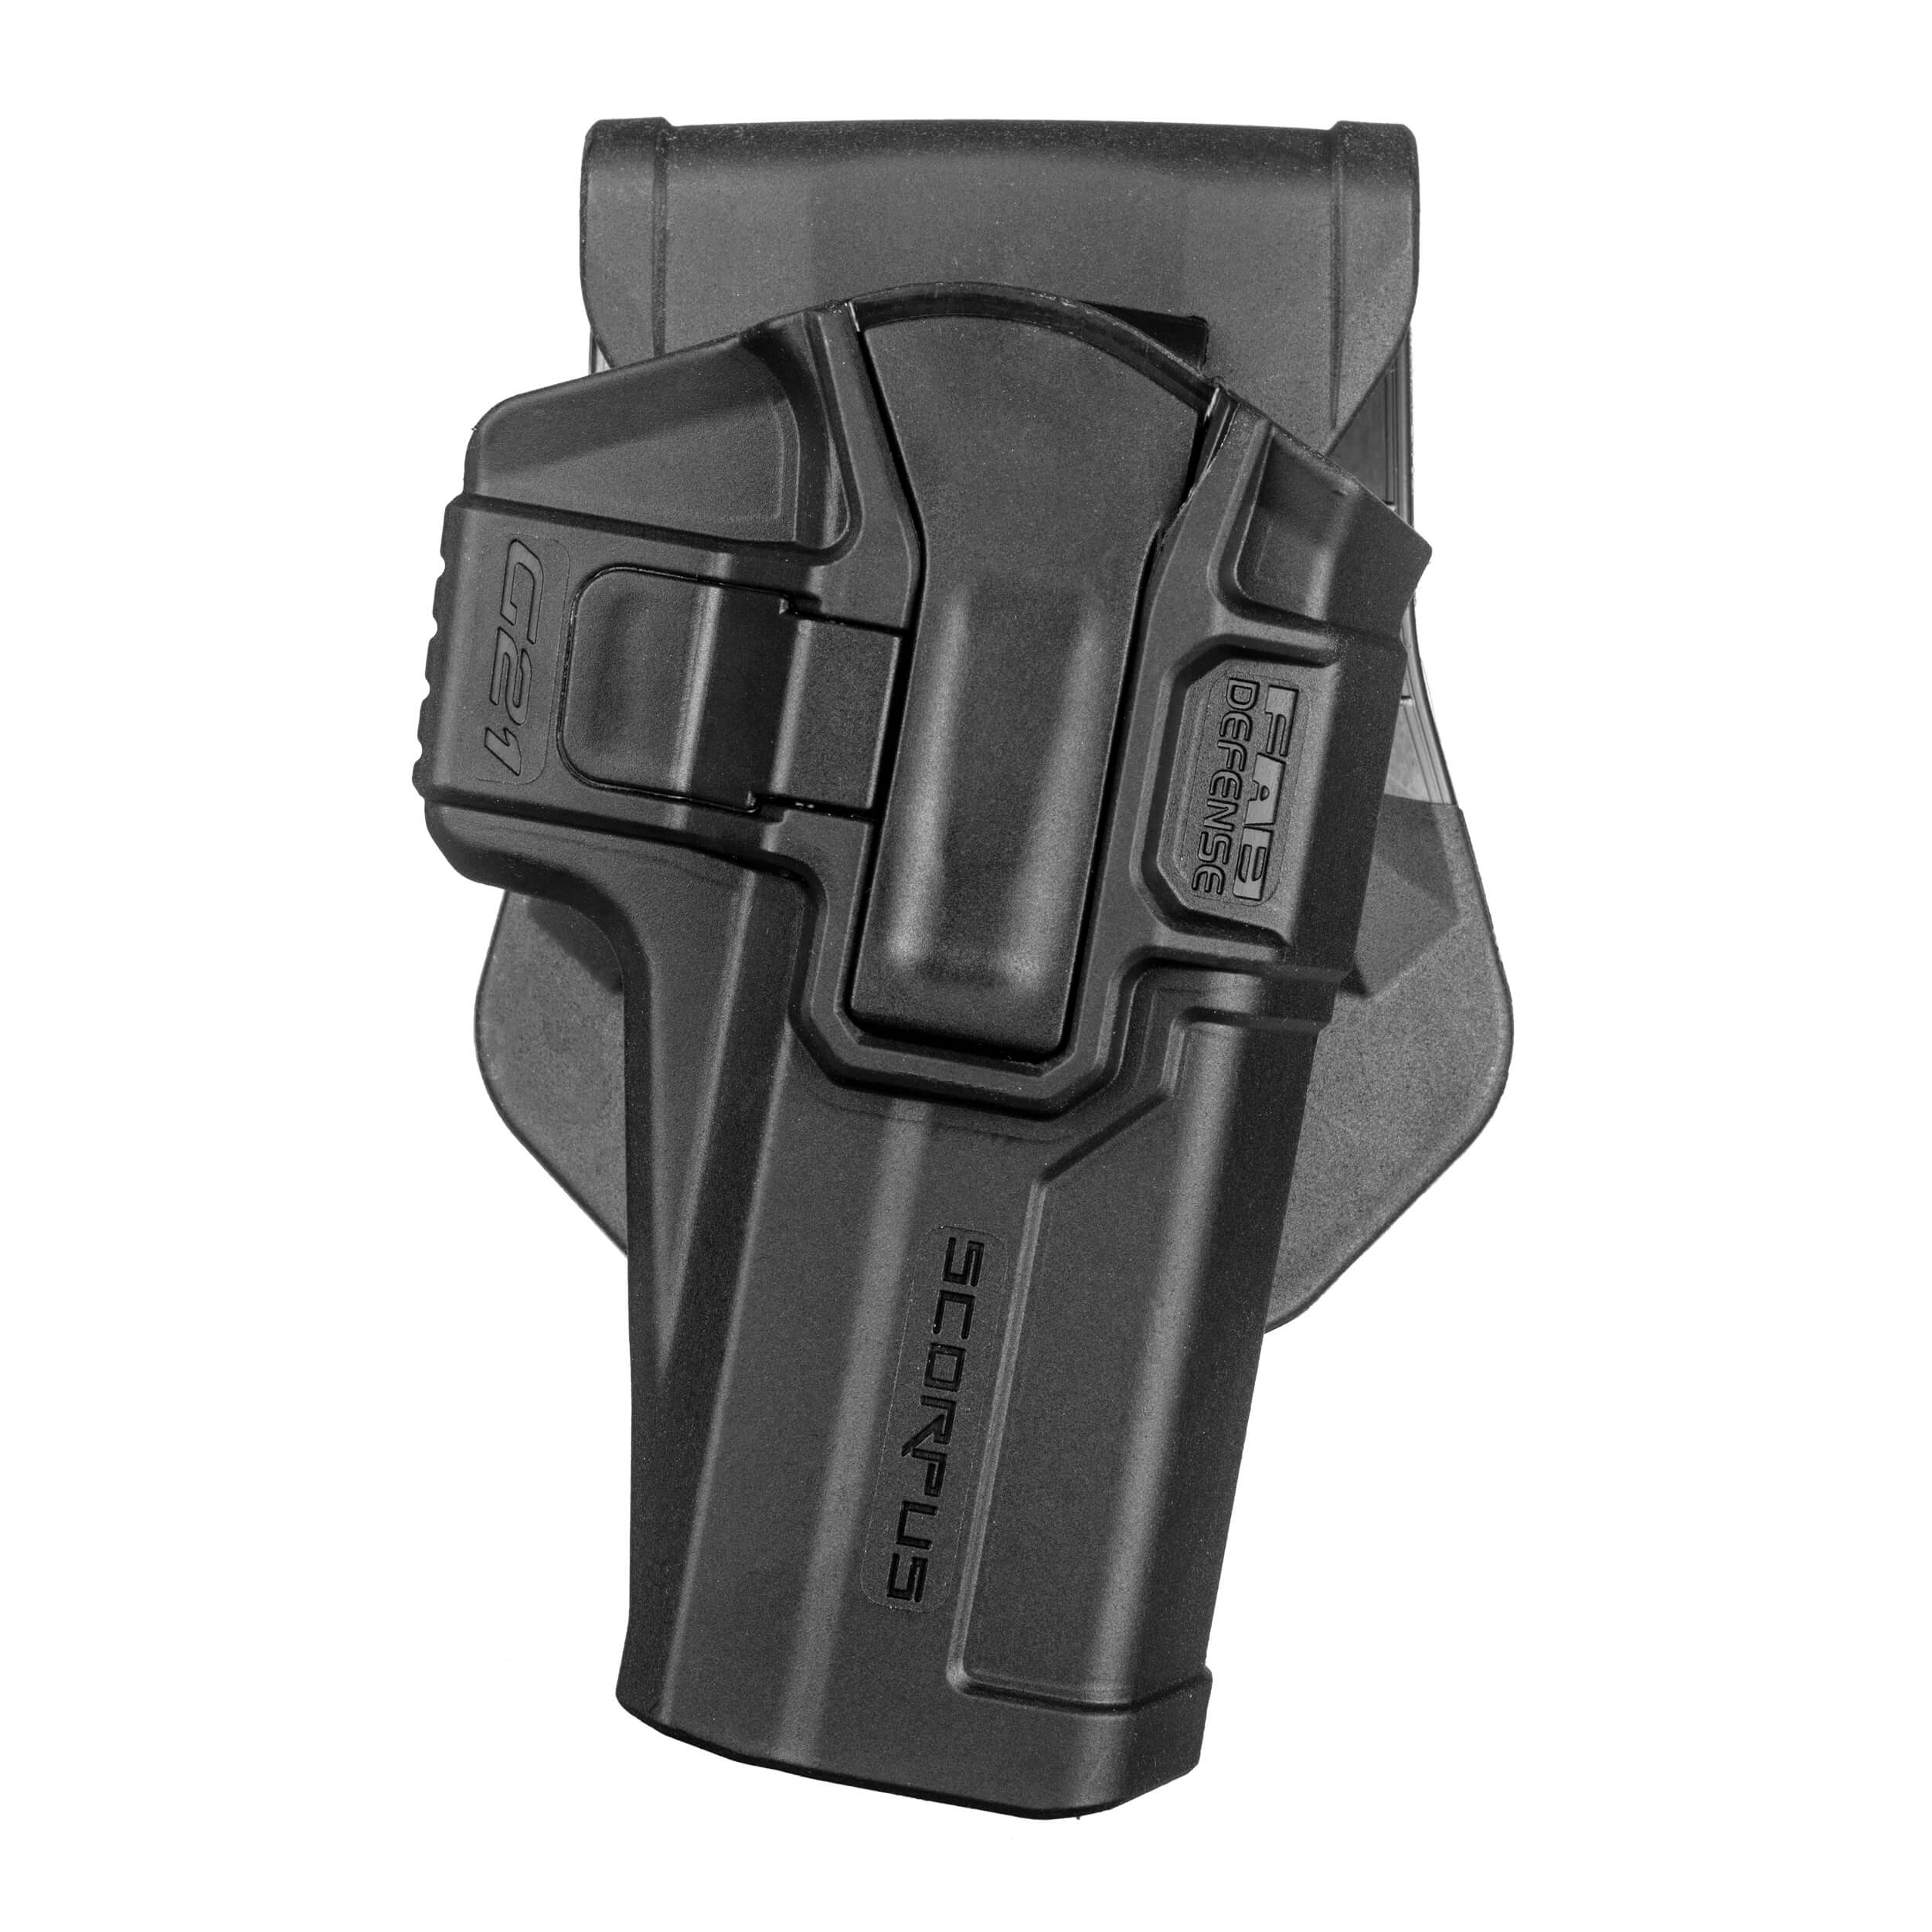 Glock .45 Level 1 Holster